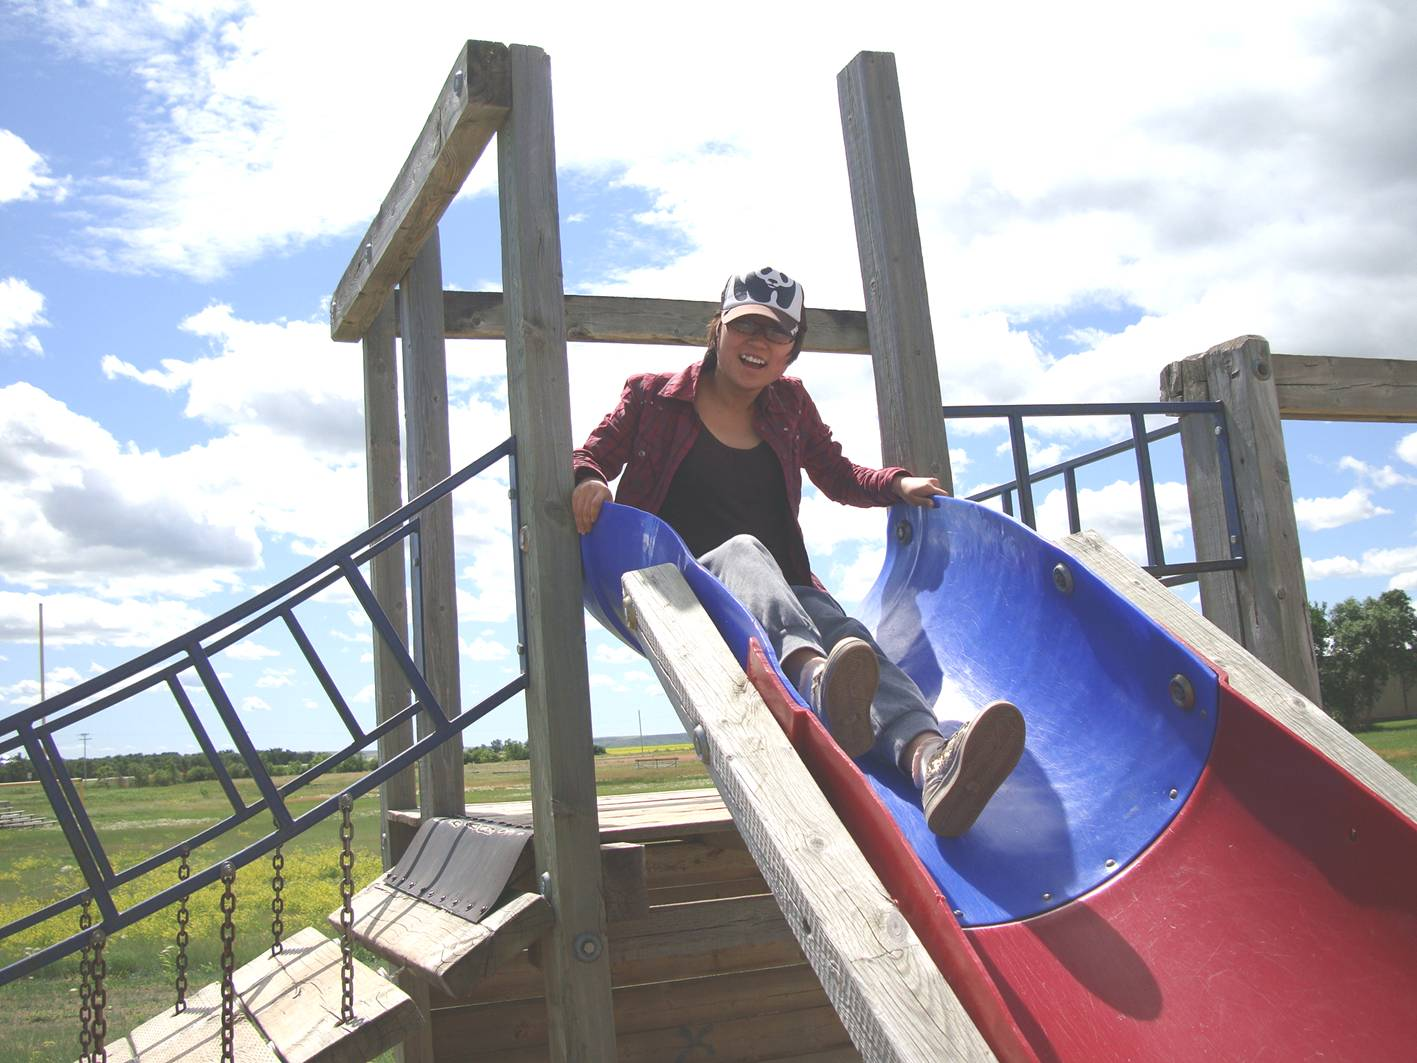 Picture:  Panda enjoys a slide on the playground equipment Ruth helped build twenty-seven years ago.  Elrose, Saskatchewan